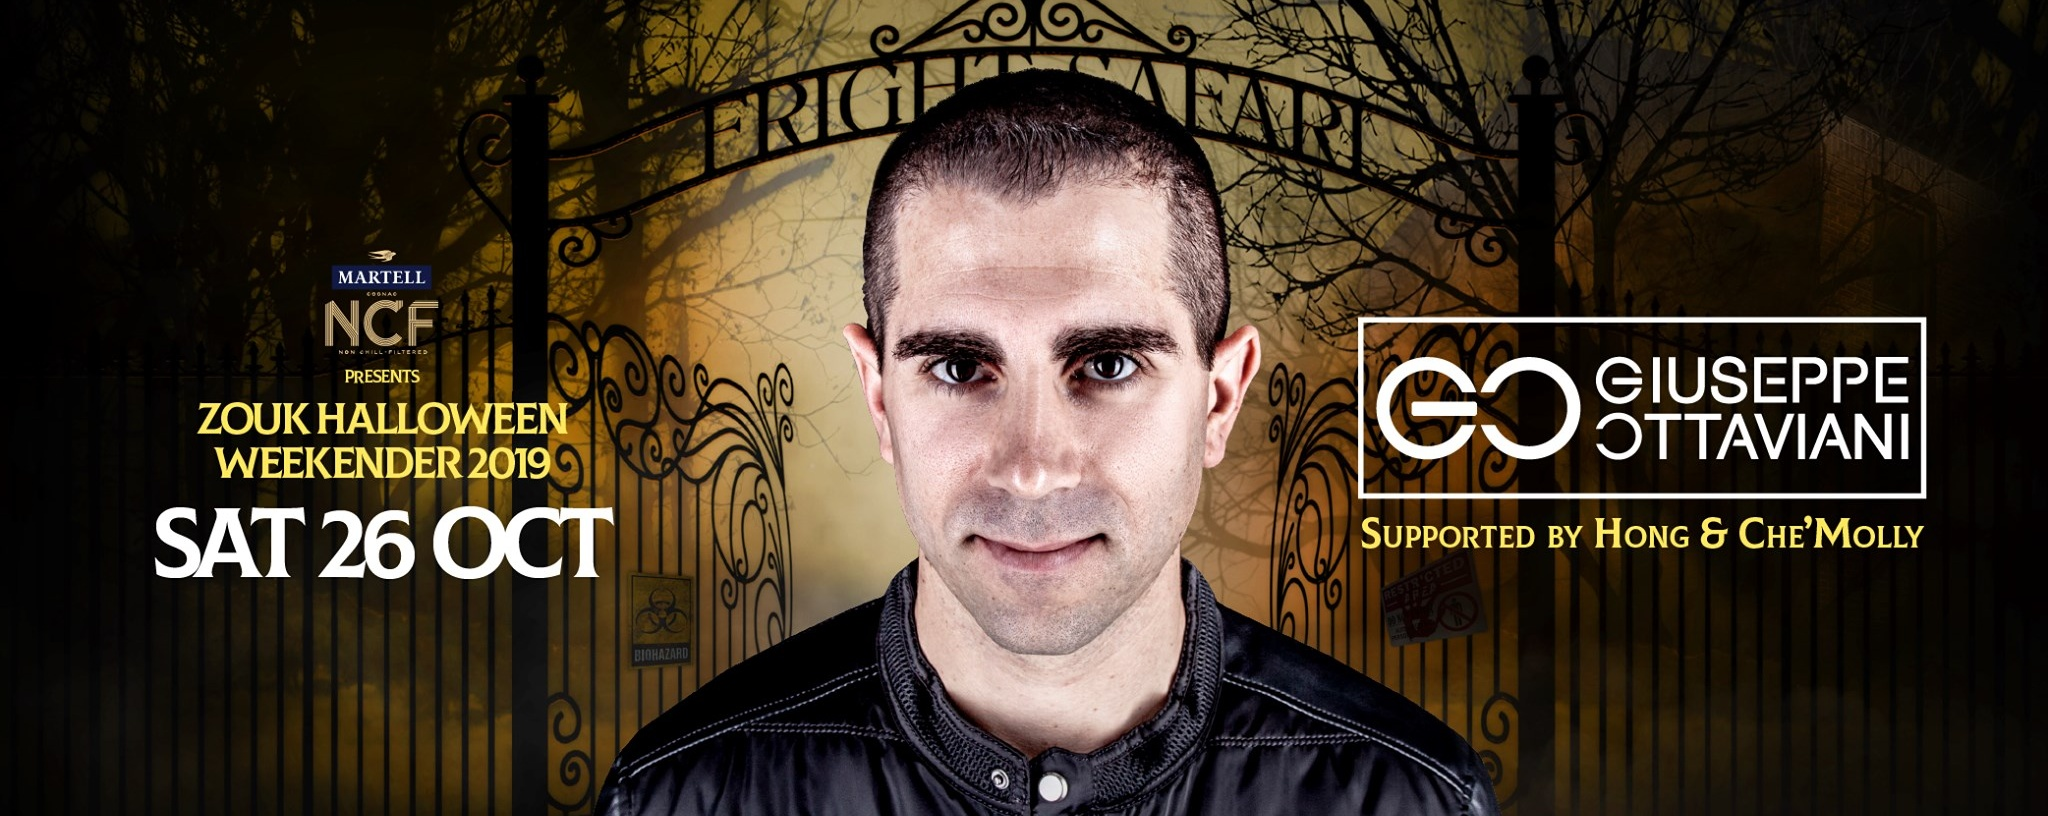 MARTELL NCF PRESENTS FRIGHT SAFARI WITH GIUSEPPE OTTAVIANI, SUPPORTED BY HONG & CHE'MOLLY